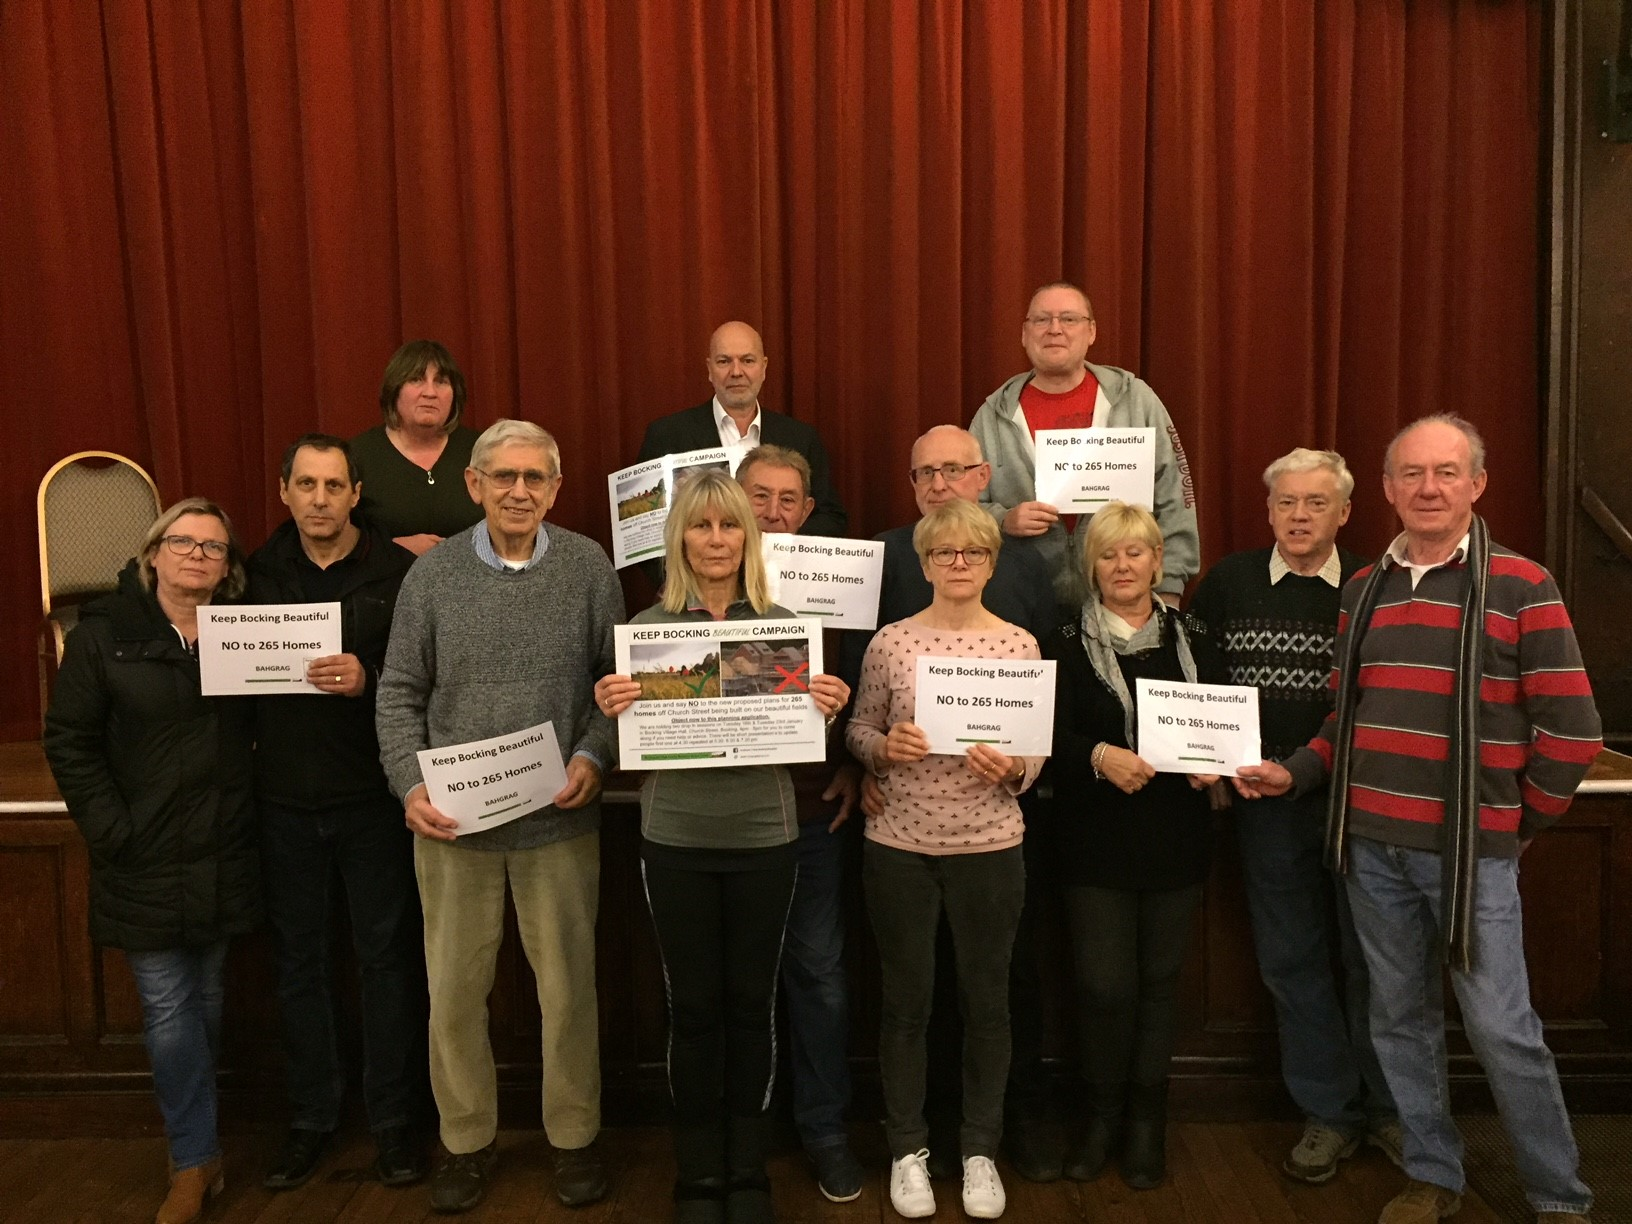 Victory for campaigners over 40 home estate